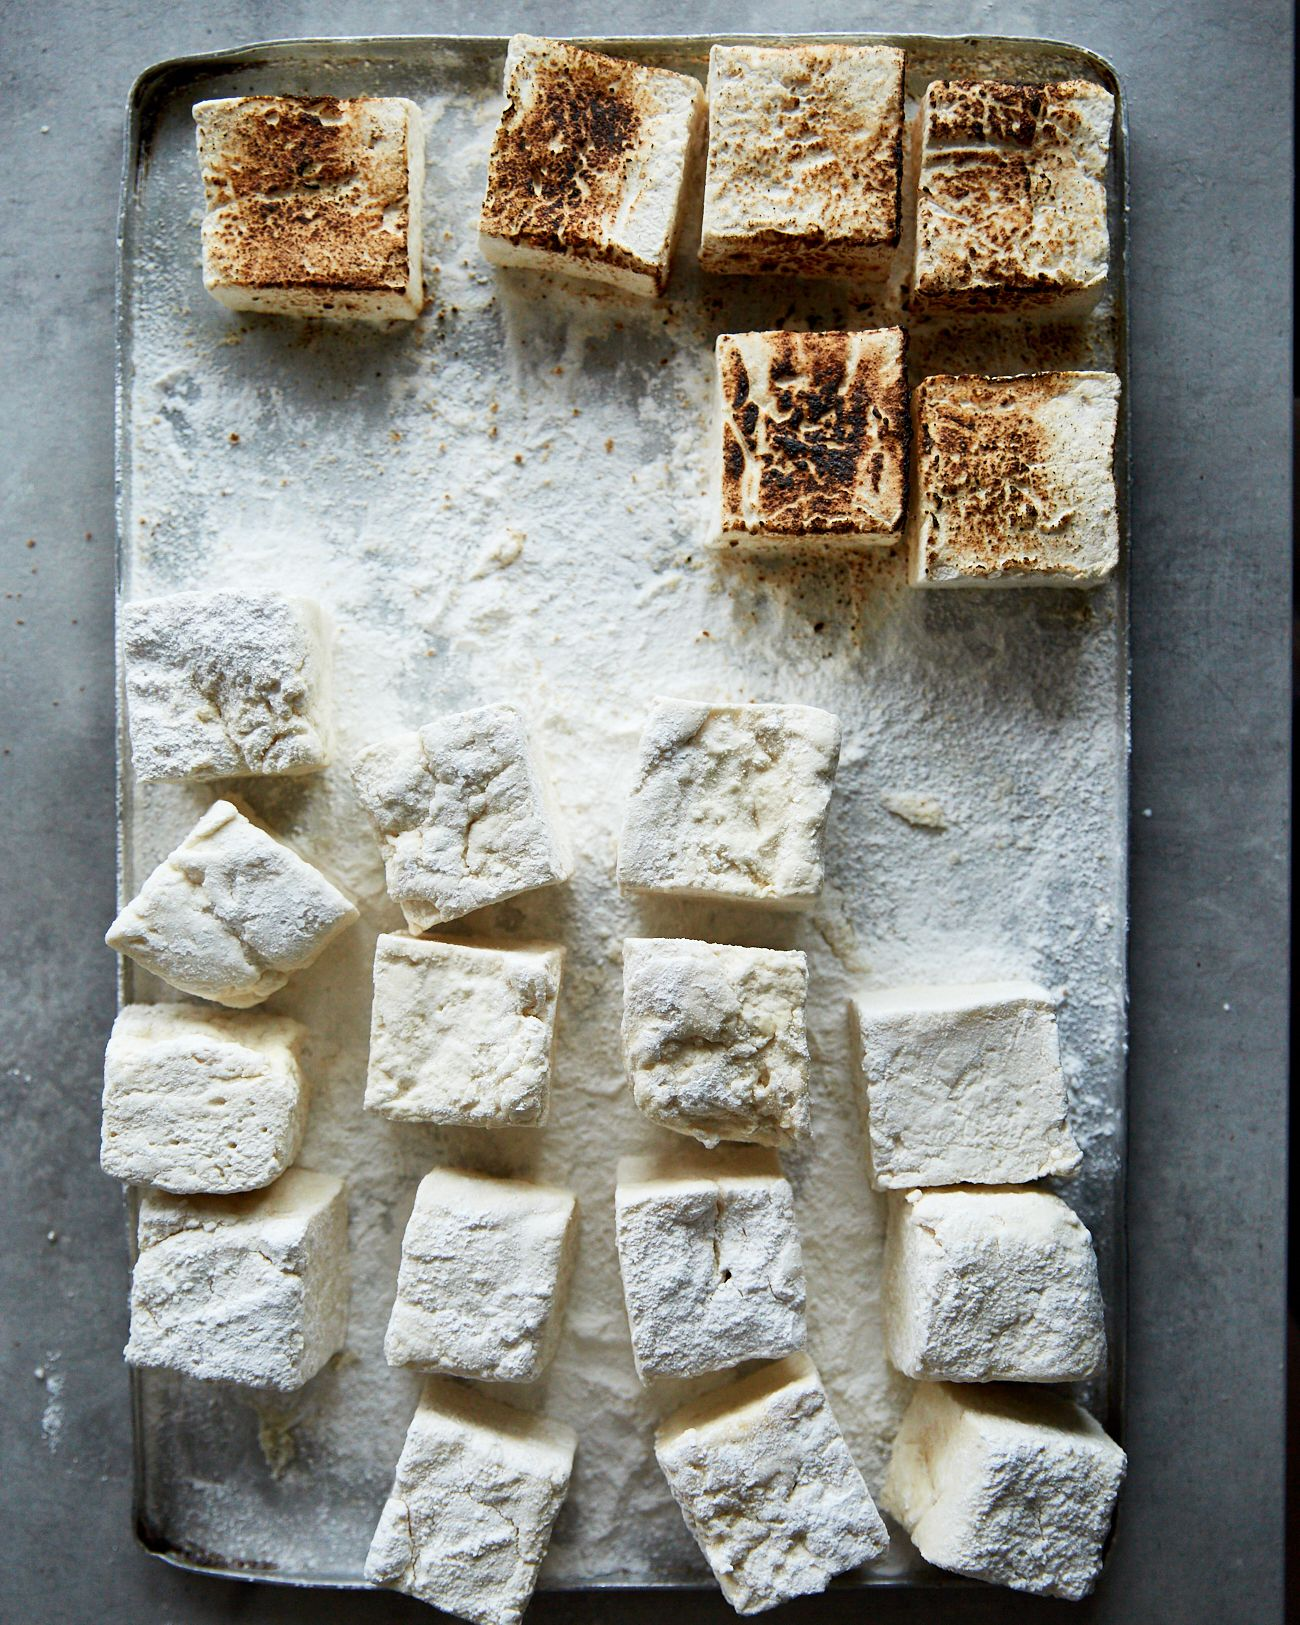 Vegan Marshmallows - Izy Hossack - Top With Cinnamon